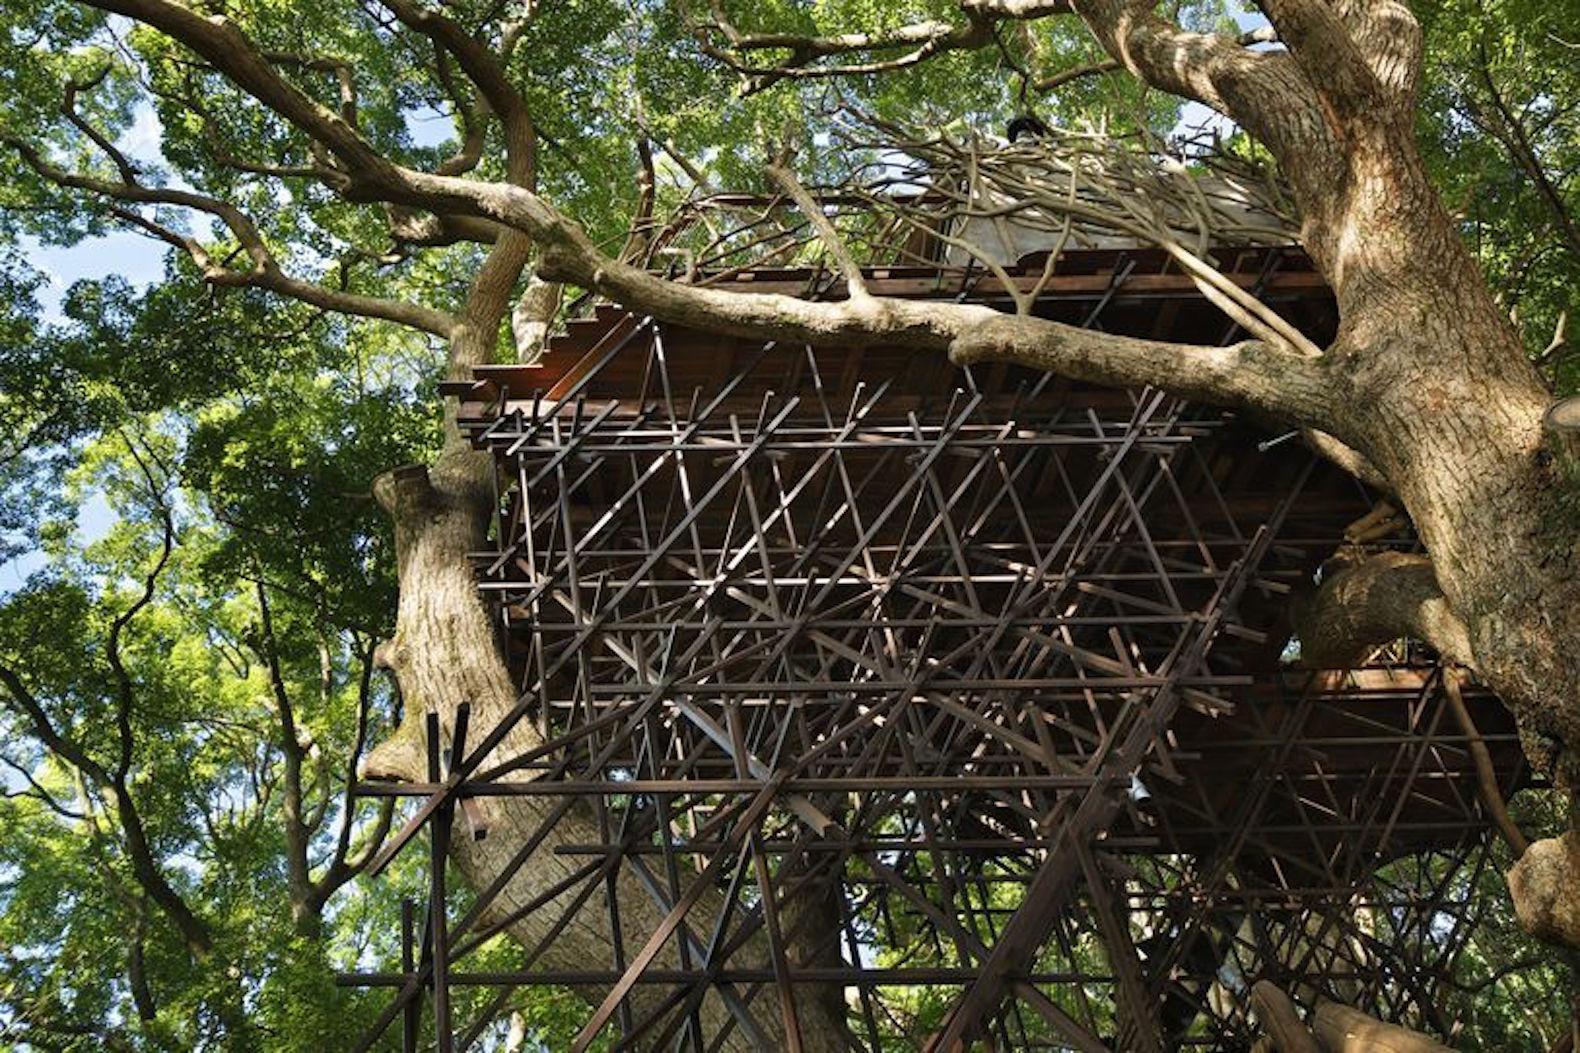 6 impressive structures built around living trees living trees inside out by takeshi hosaka inhabitat green design innovation architecture